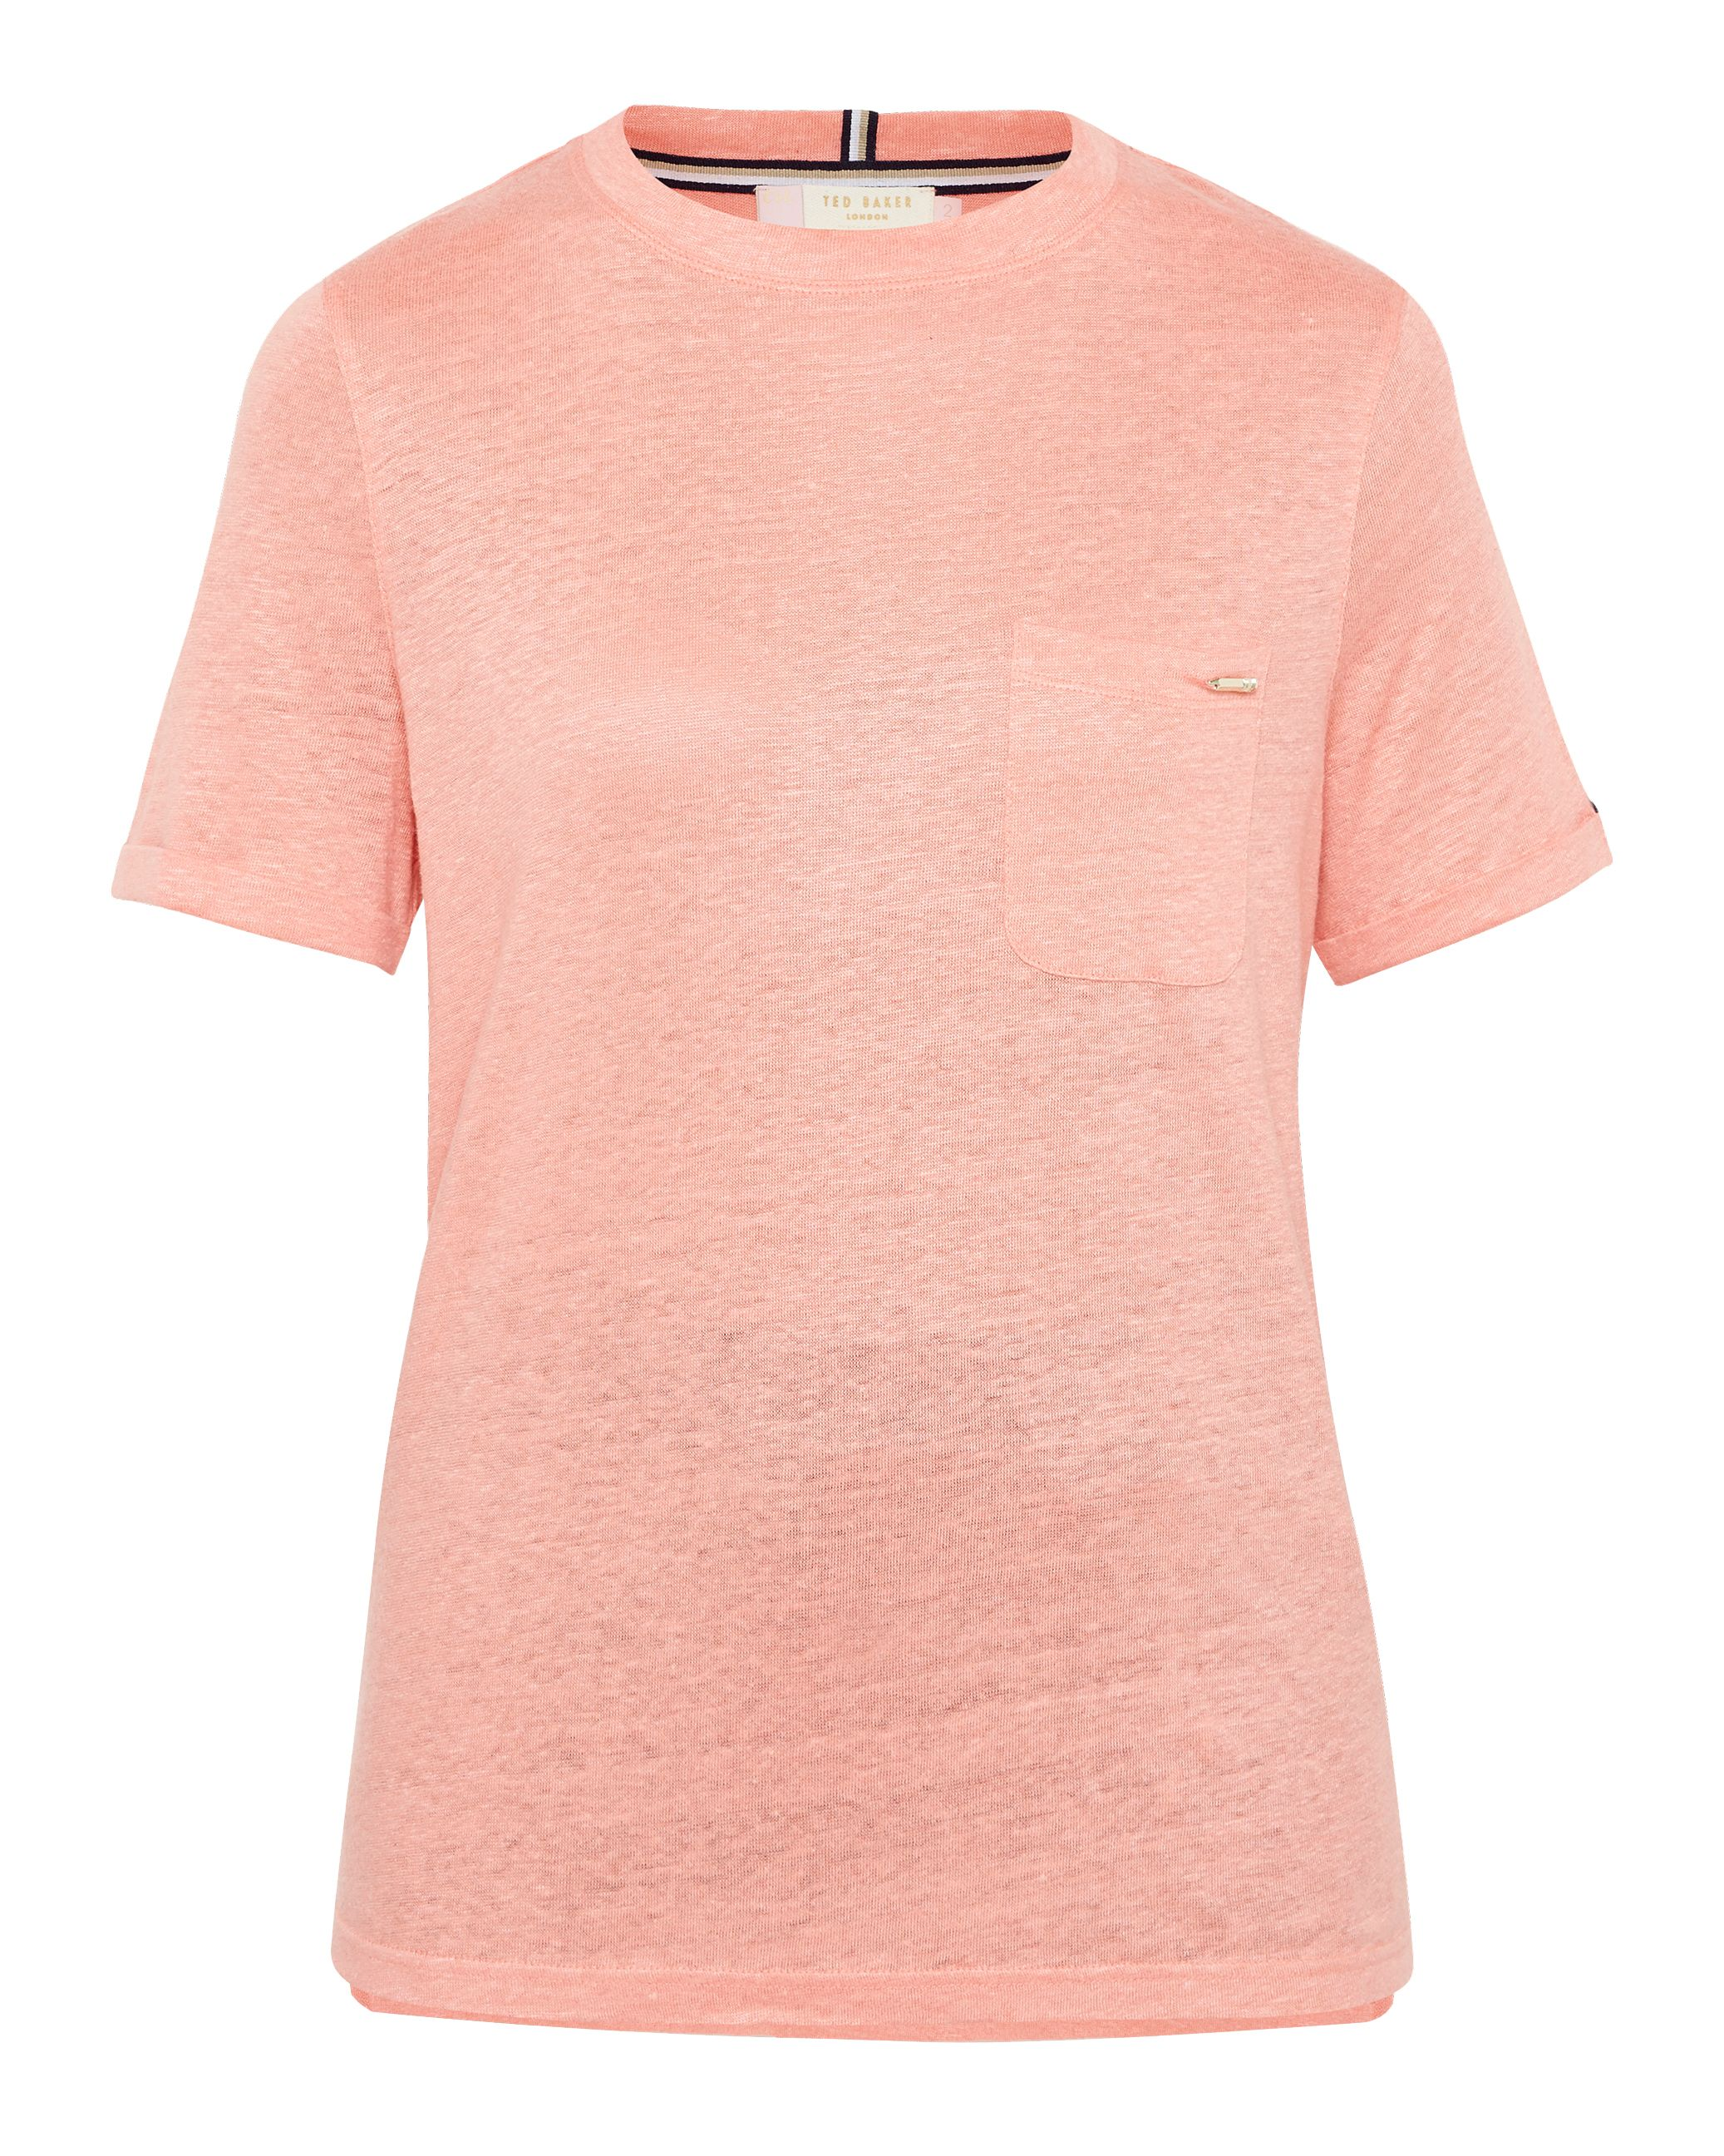 Ted Baker Harlaa Square Cut Linen TShirt Coral